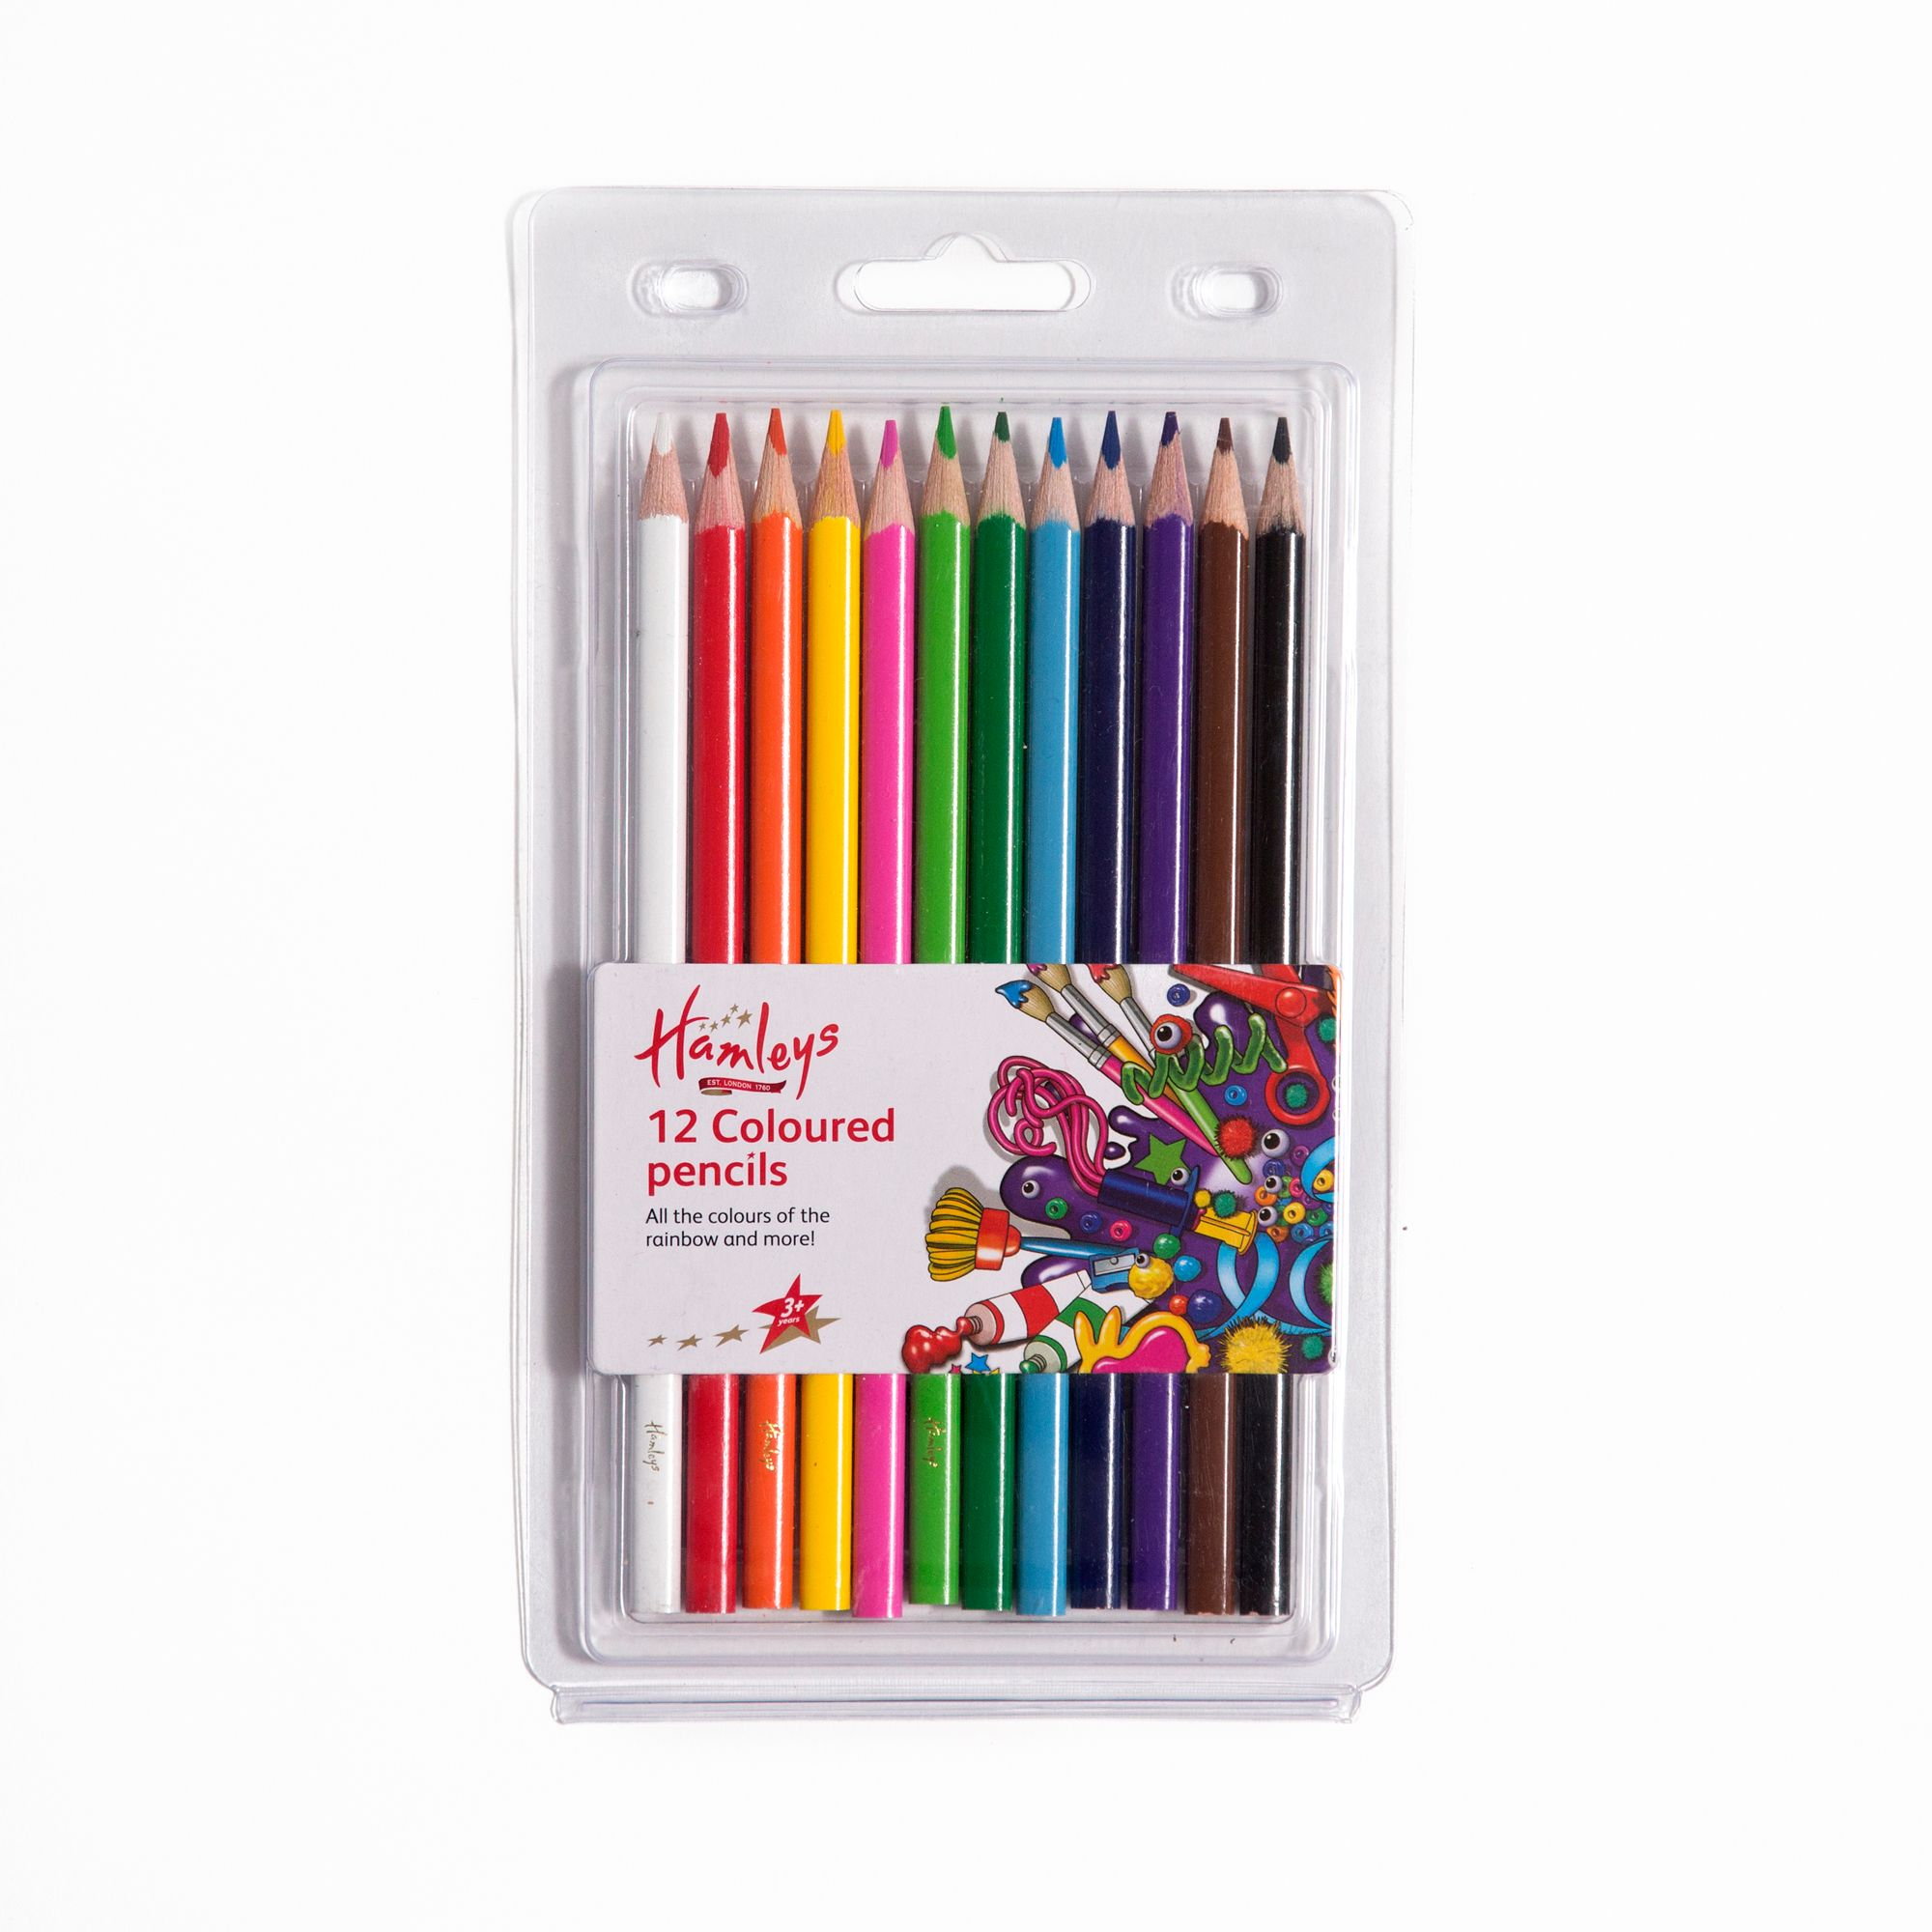 Hamleys 12 Coloured Pencils